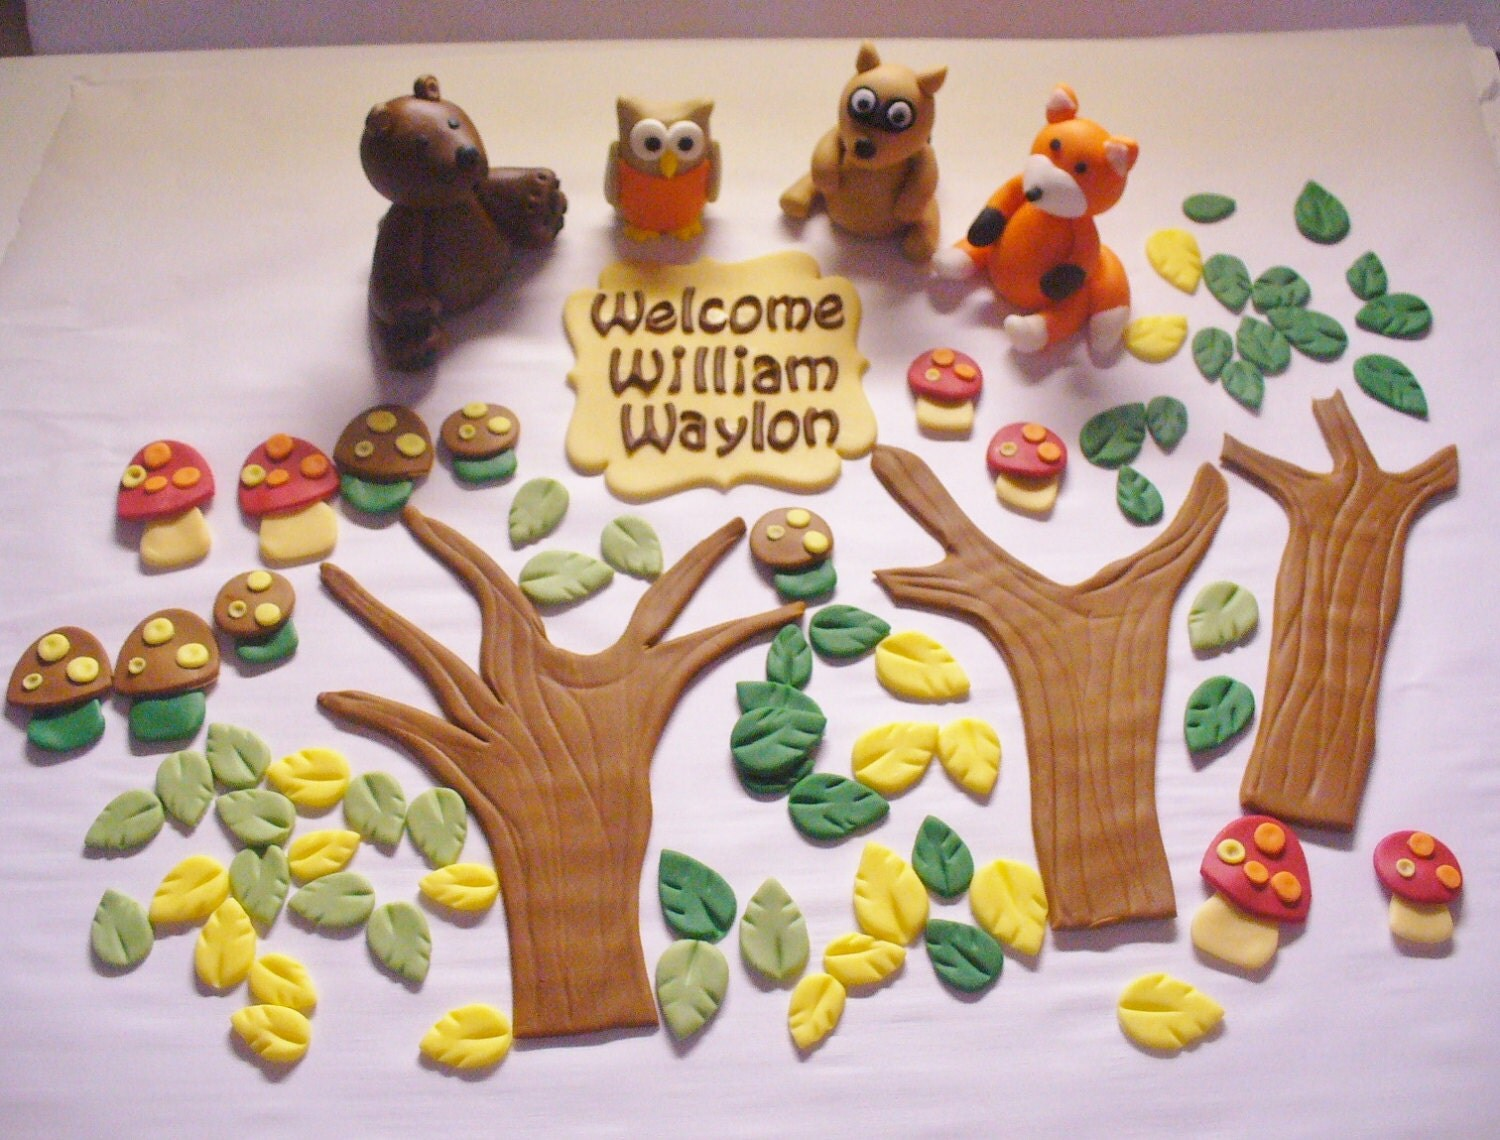 Cake Decoration Woodland Animals : WOODLAND Animals Edible Fondant Personalized Cake Decorations